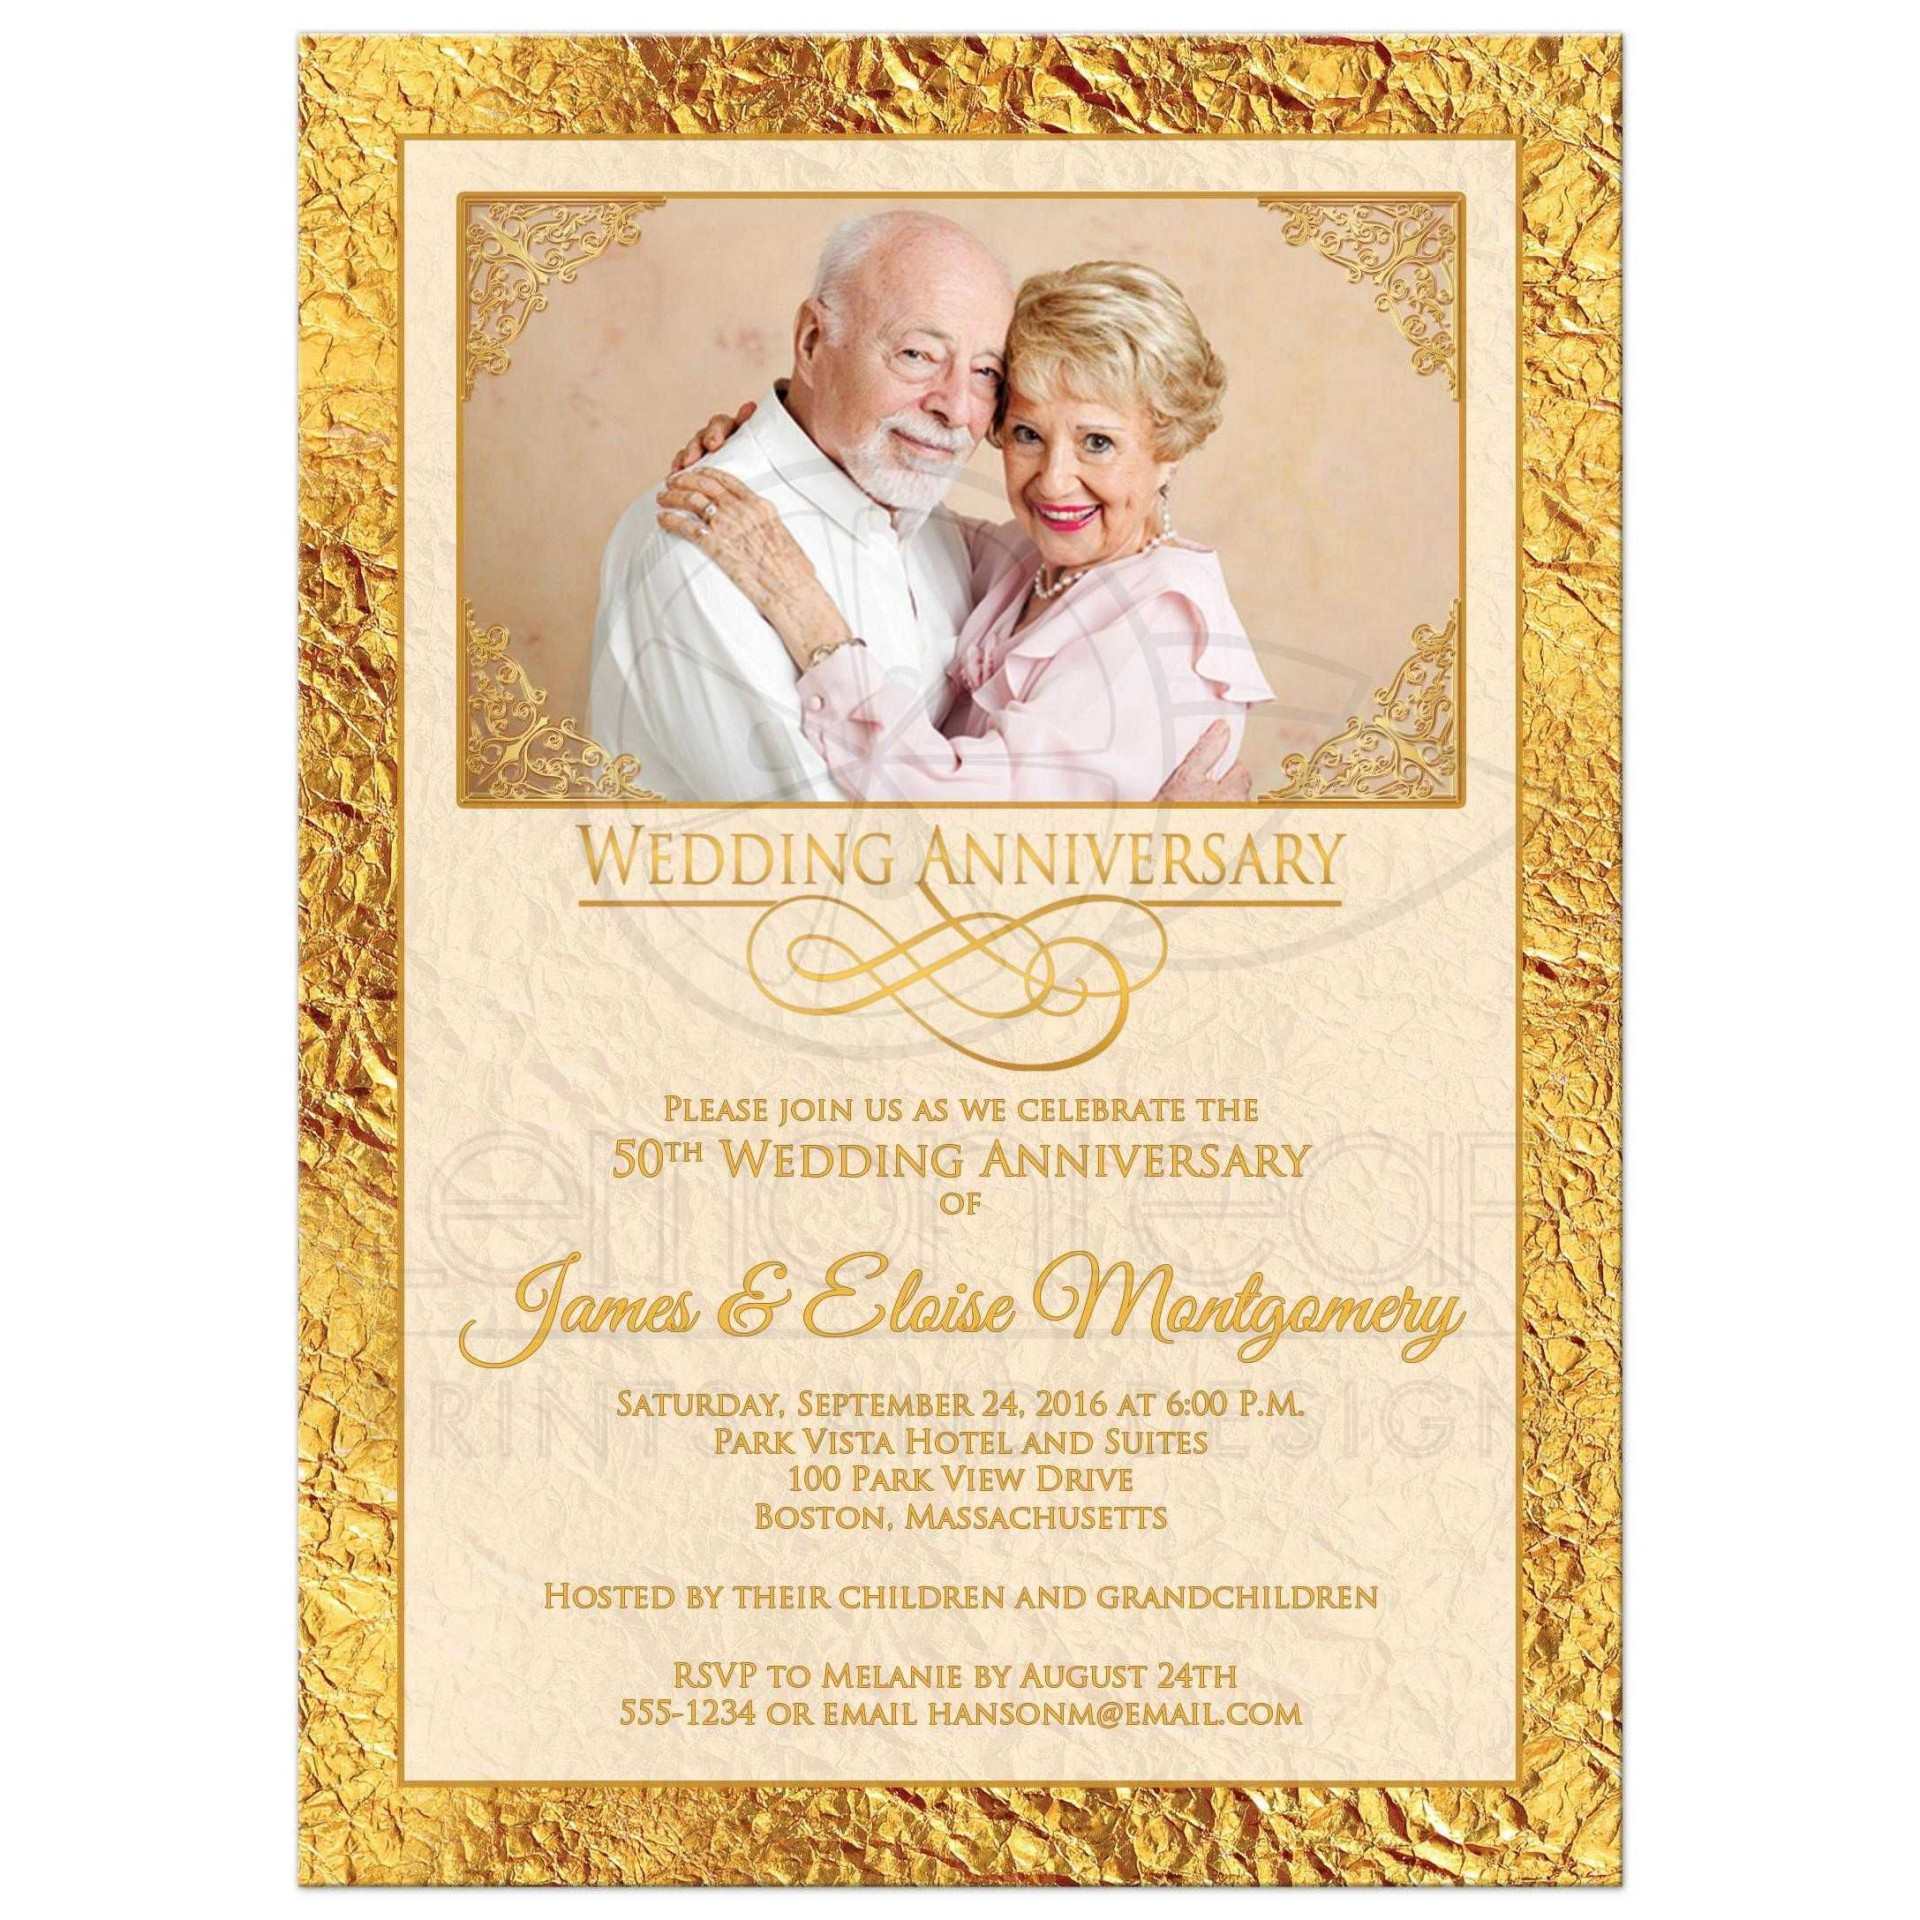 005 Awful 50th Wedding Anniversary Invitation Design High Definition  Designs Wording Sample Card Template Free Download1920